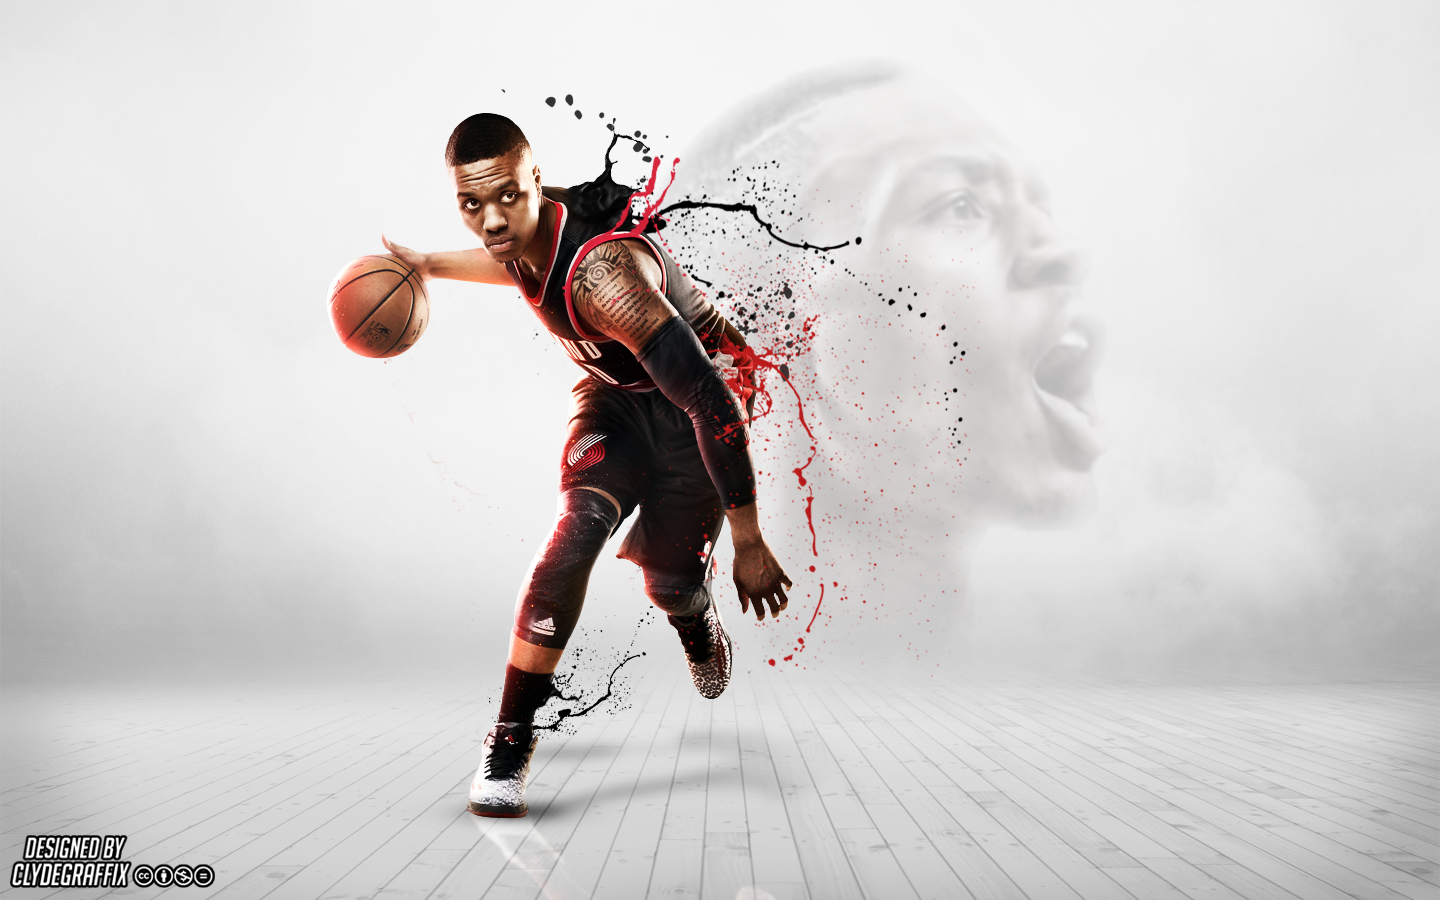 Wallpapers   Clyde Graffix 1440x900